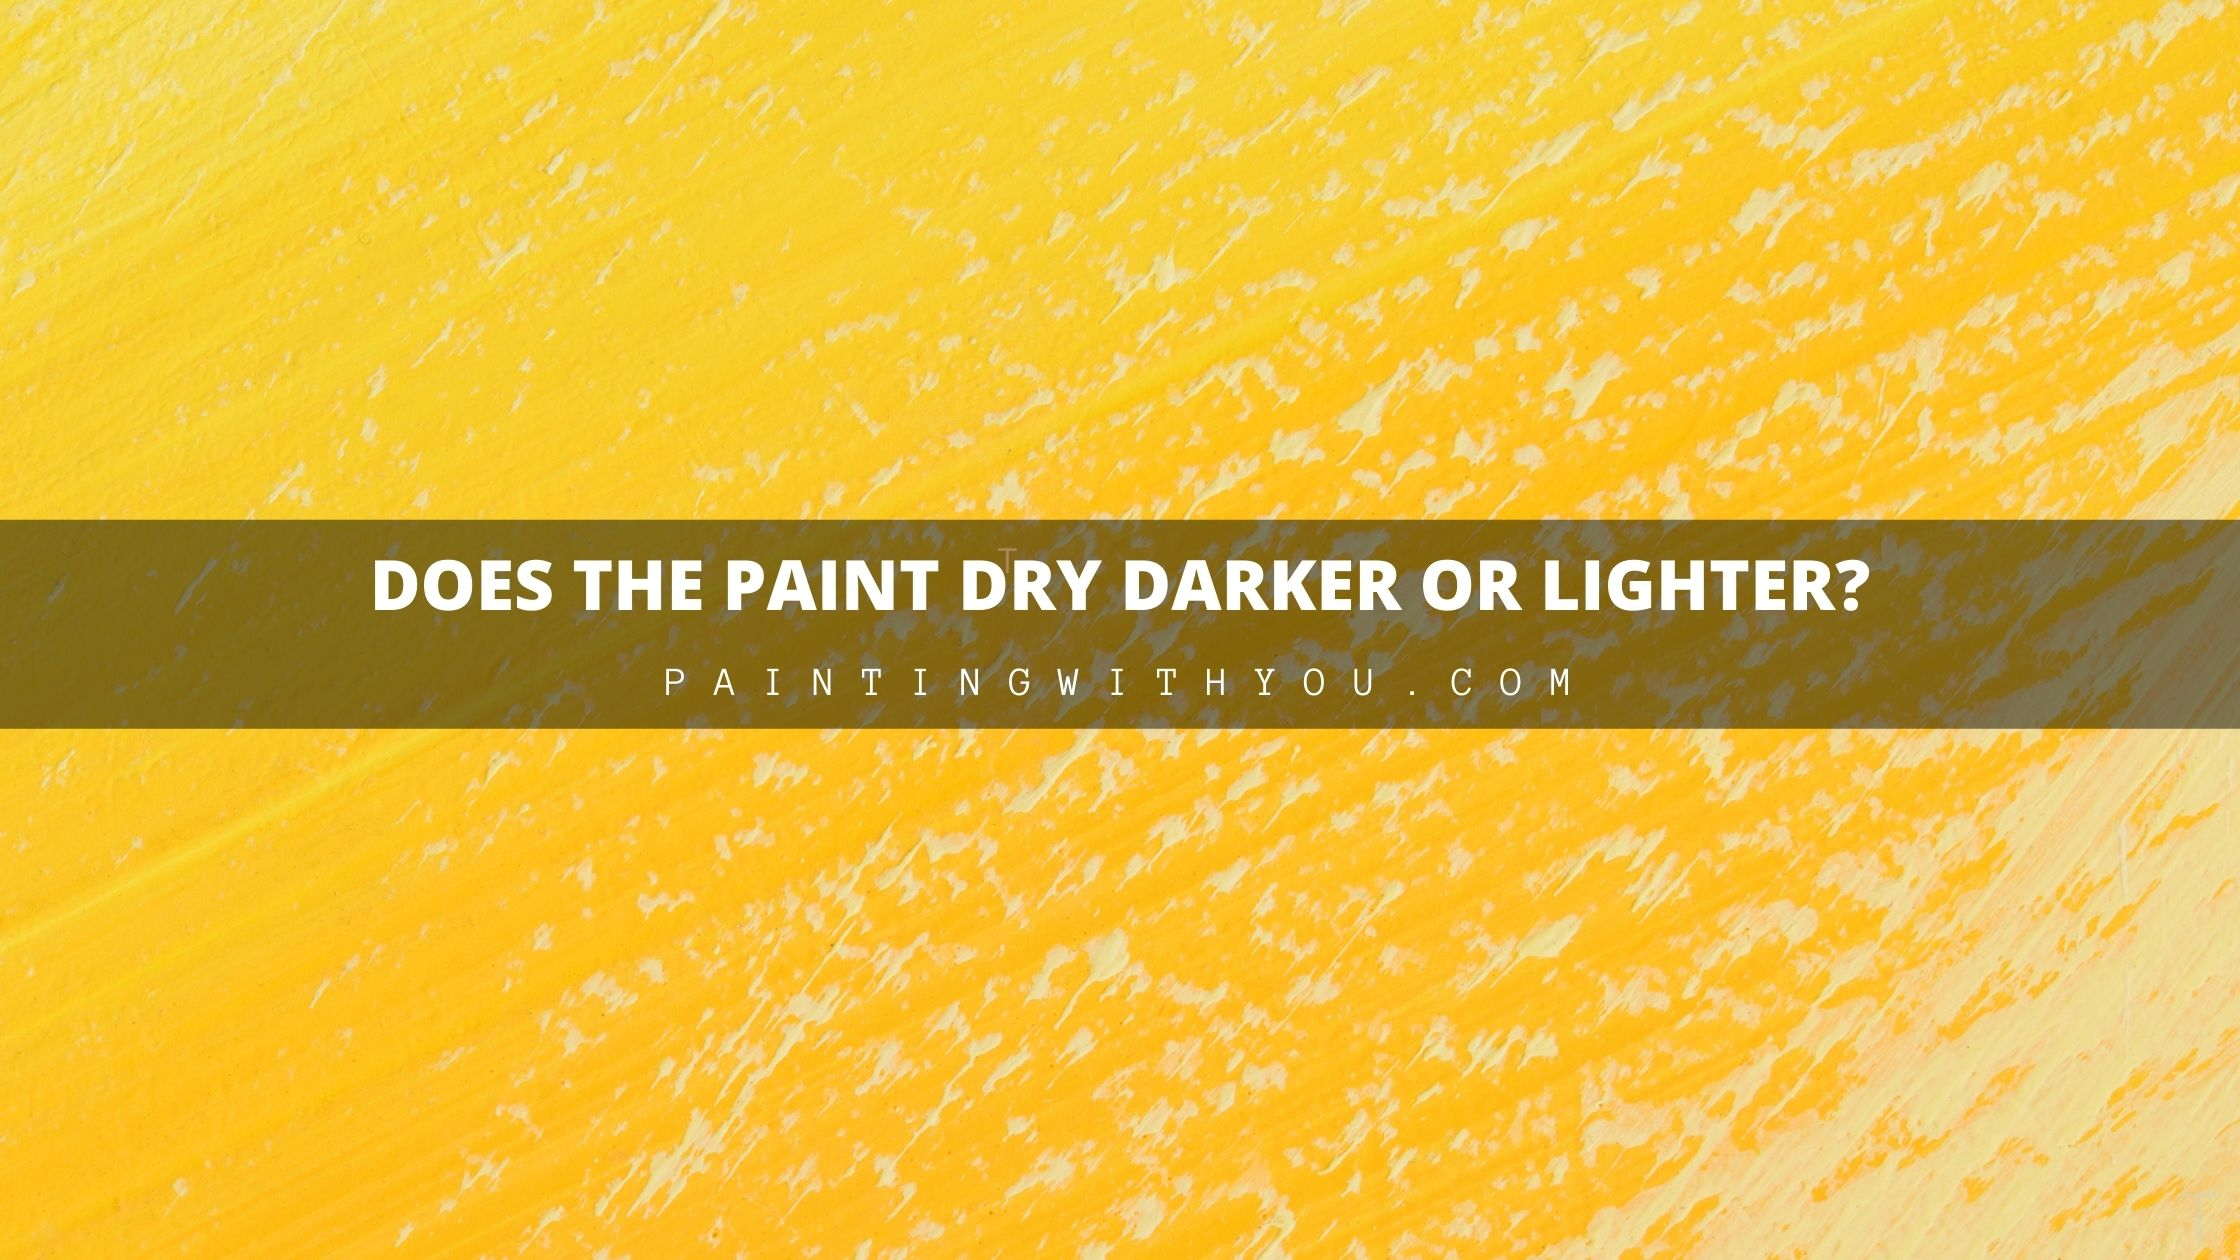 Does the Paint Dry Darker or Lighter indoor and outdoor?